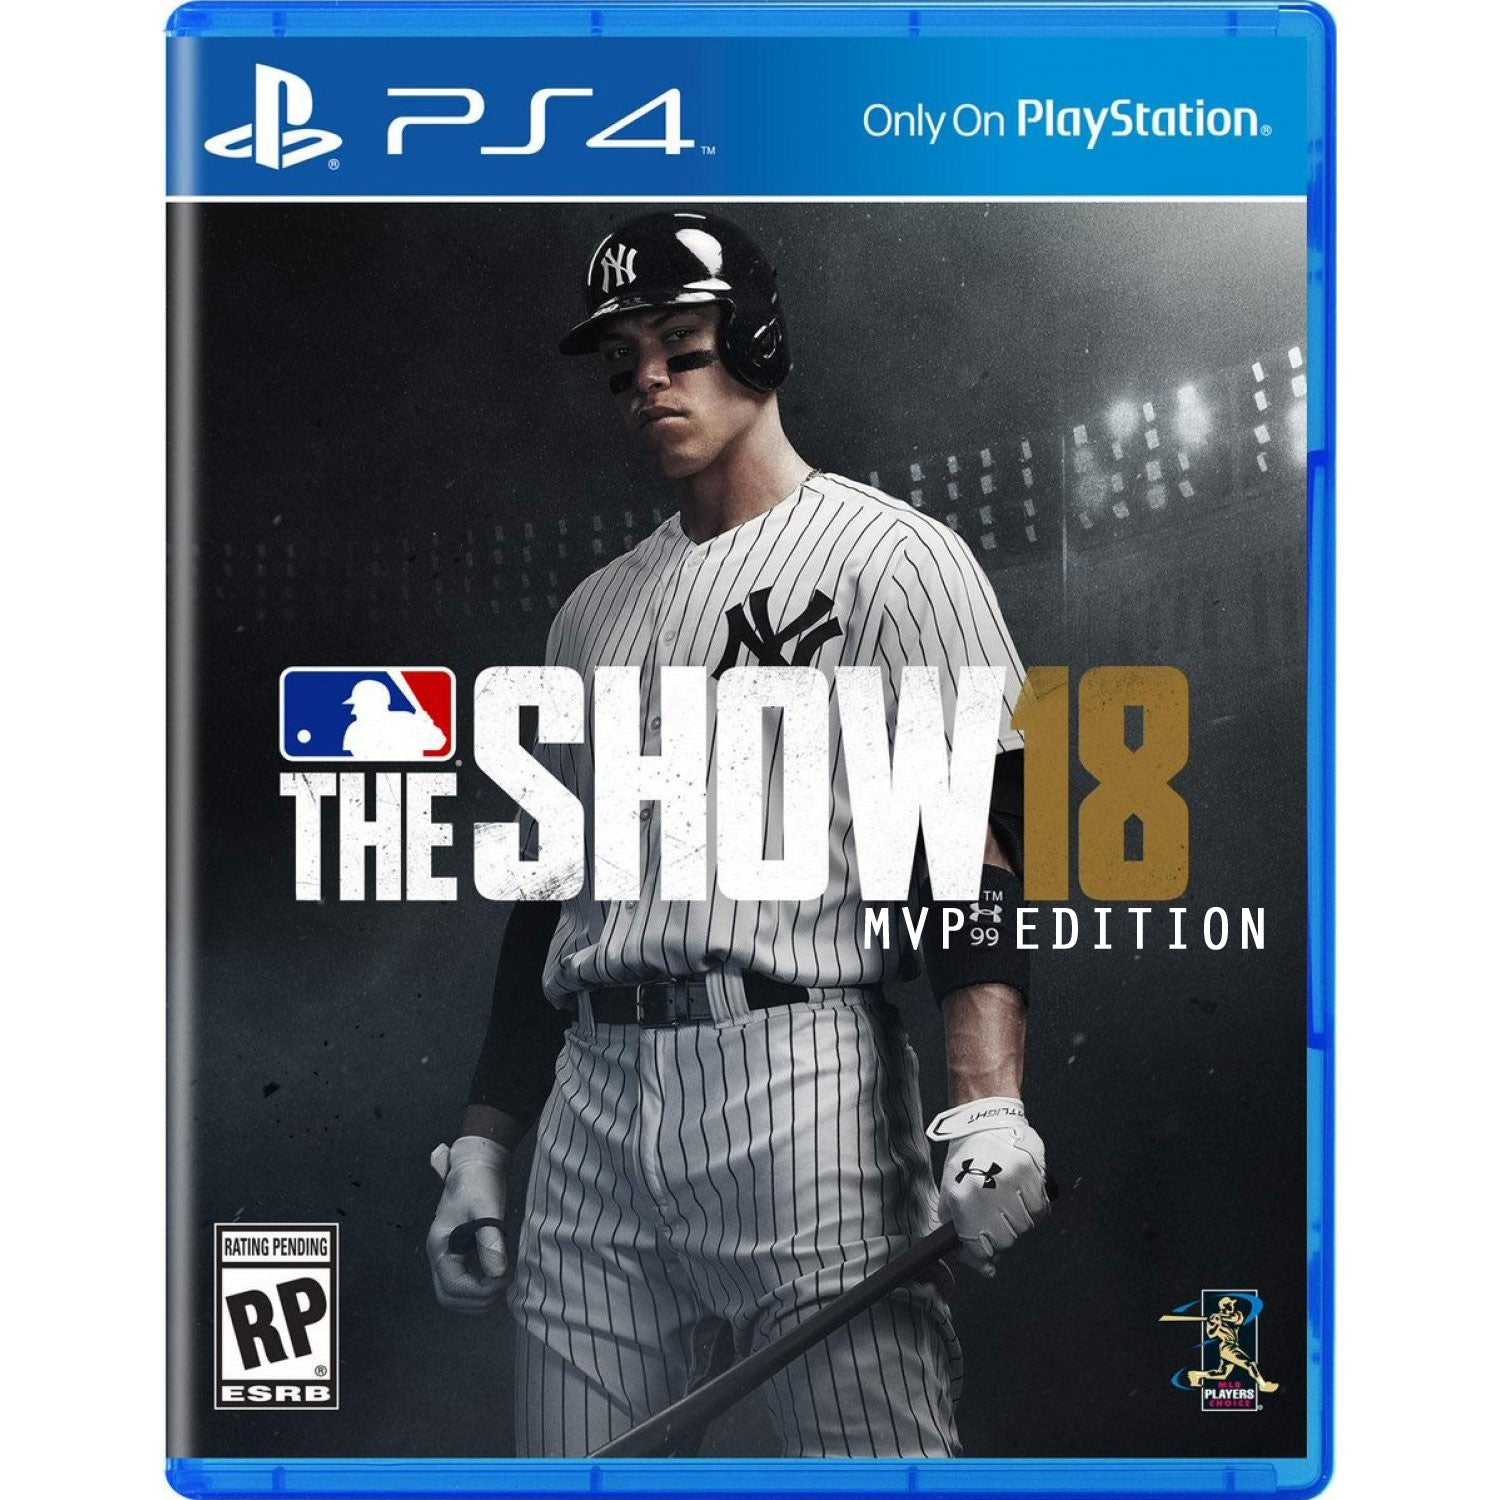 Sony Playstation 4 Tagged Ps4 Page Gt Sport Standard Edition Reg3 Mlb The Show 18 Mvp